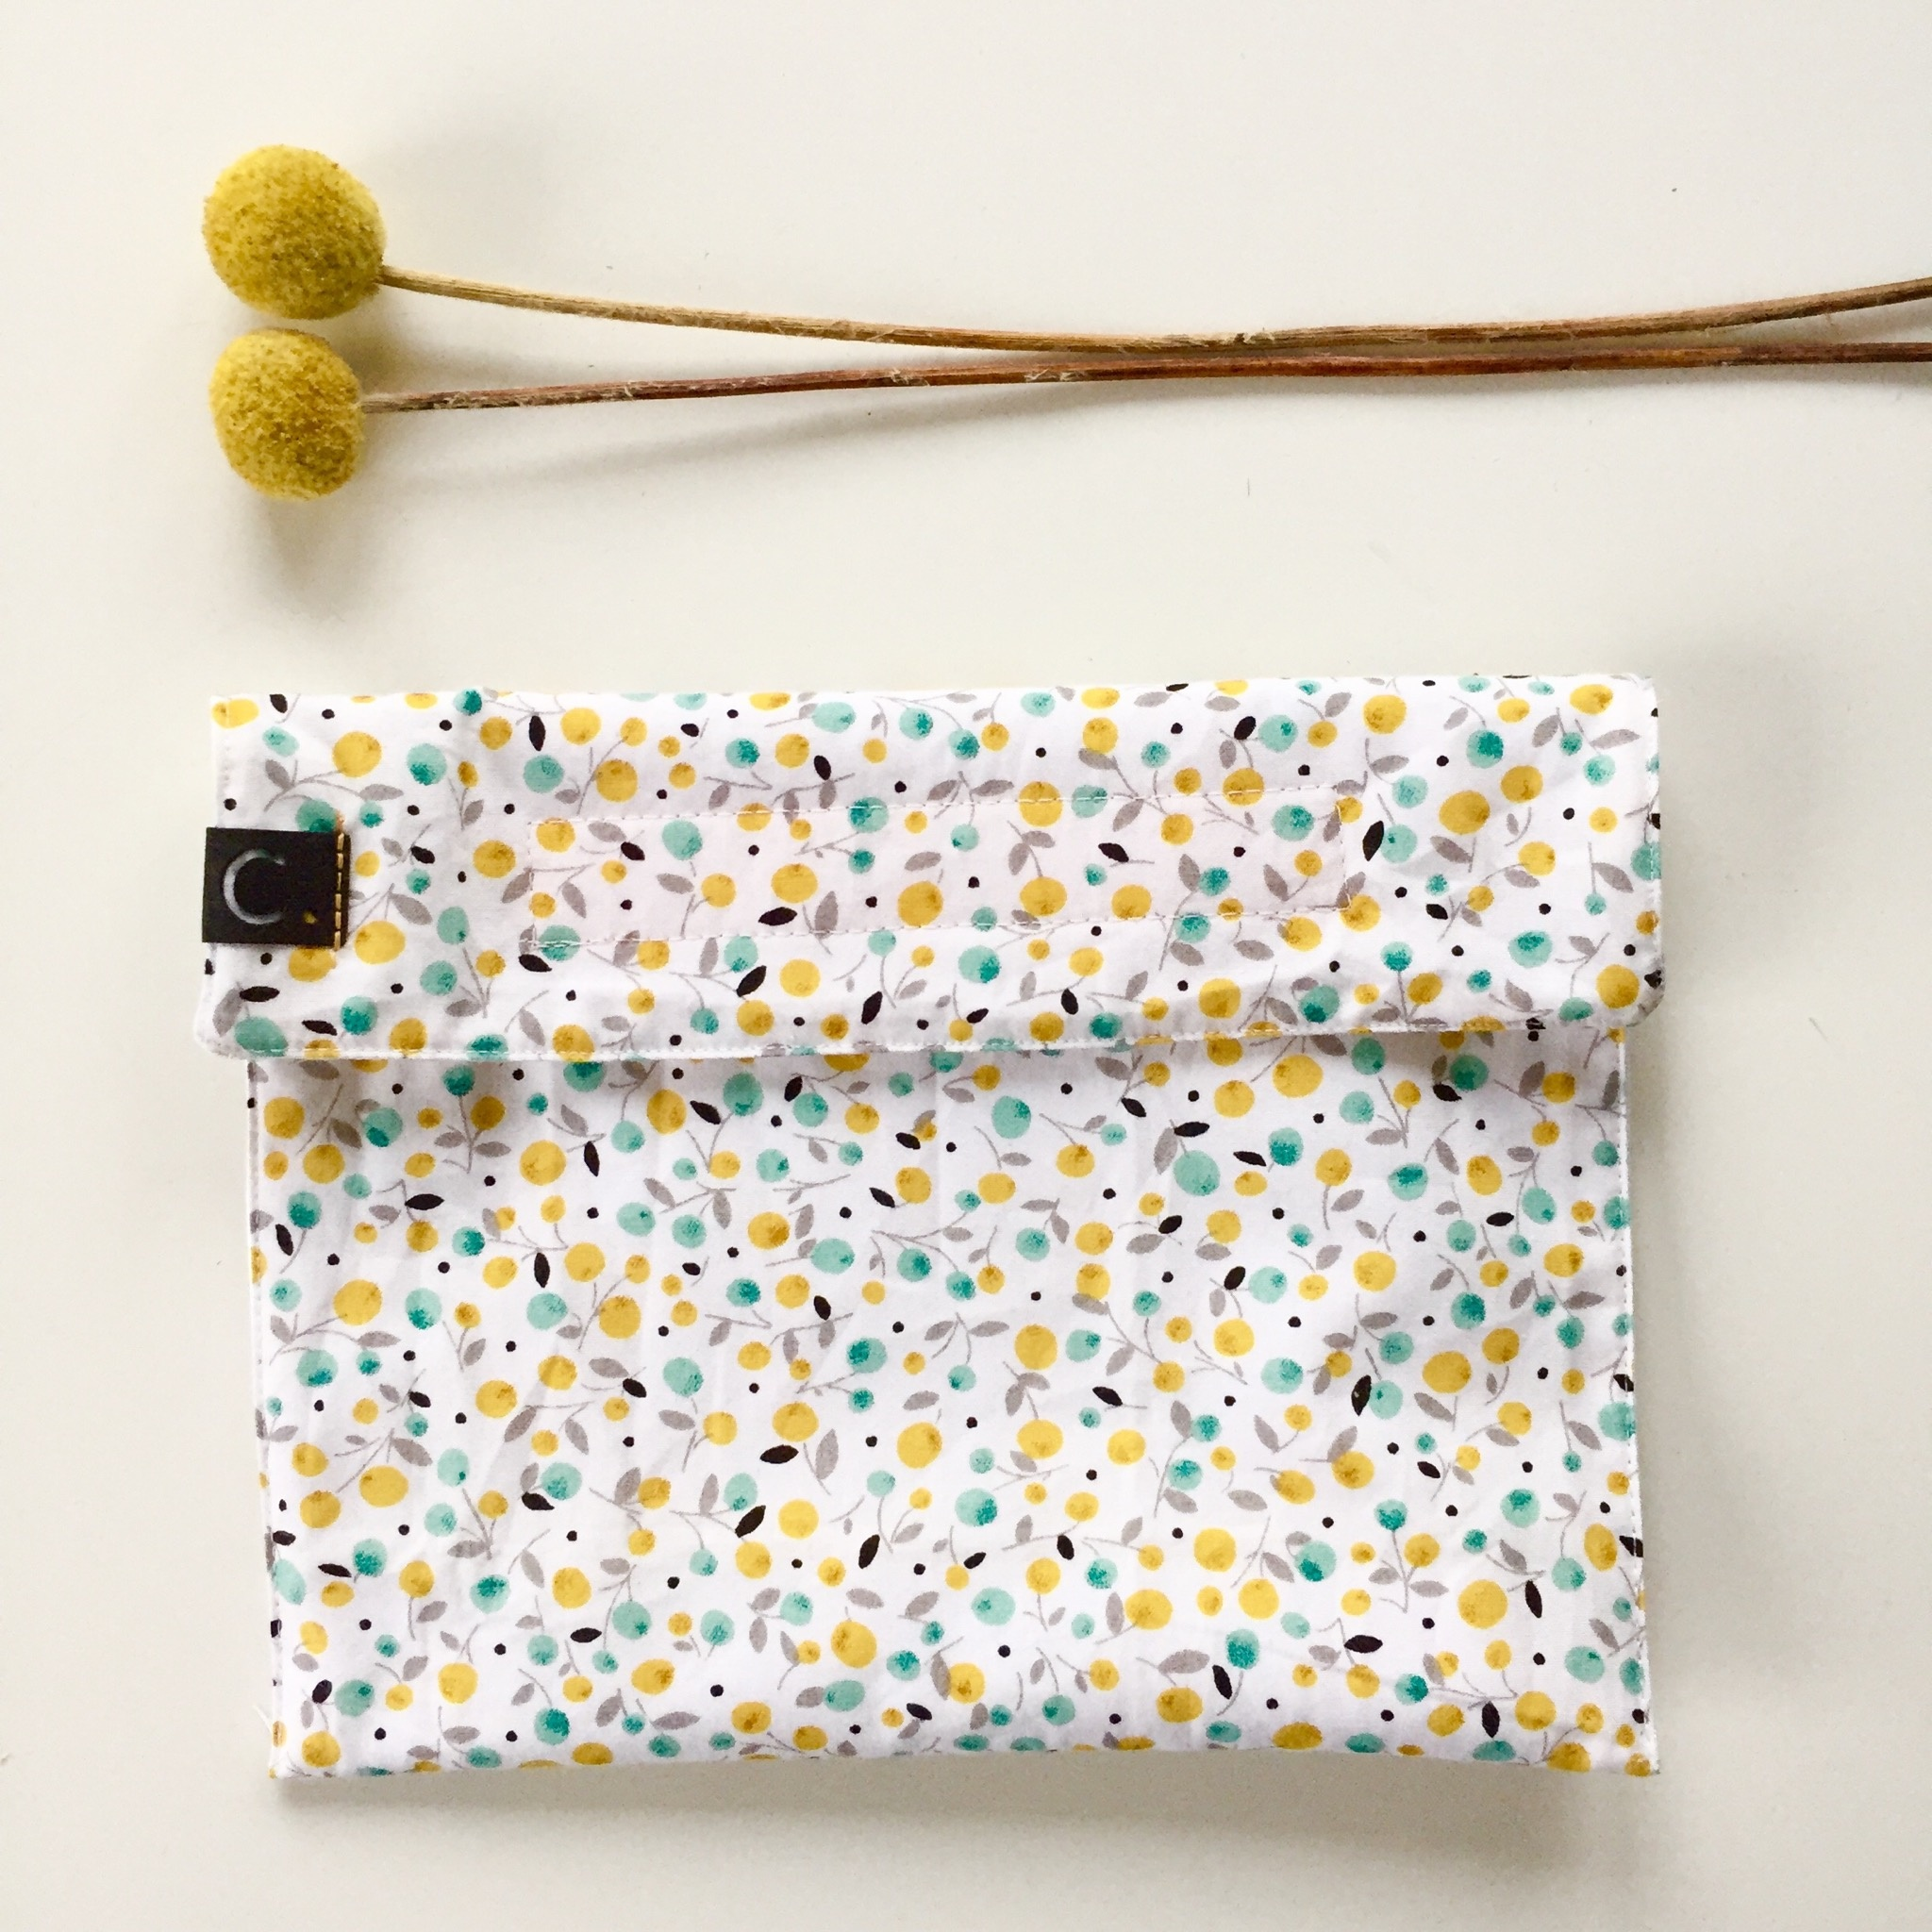 Snack bag yellow-coloured made of cotton fabric